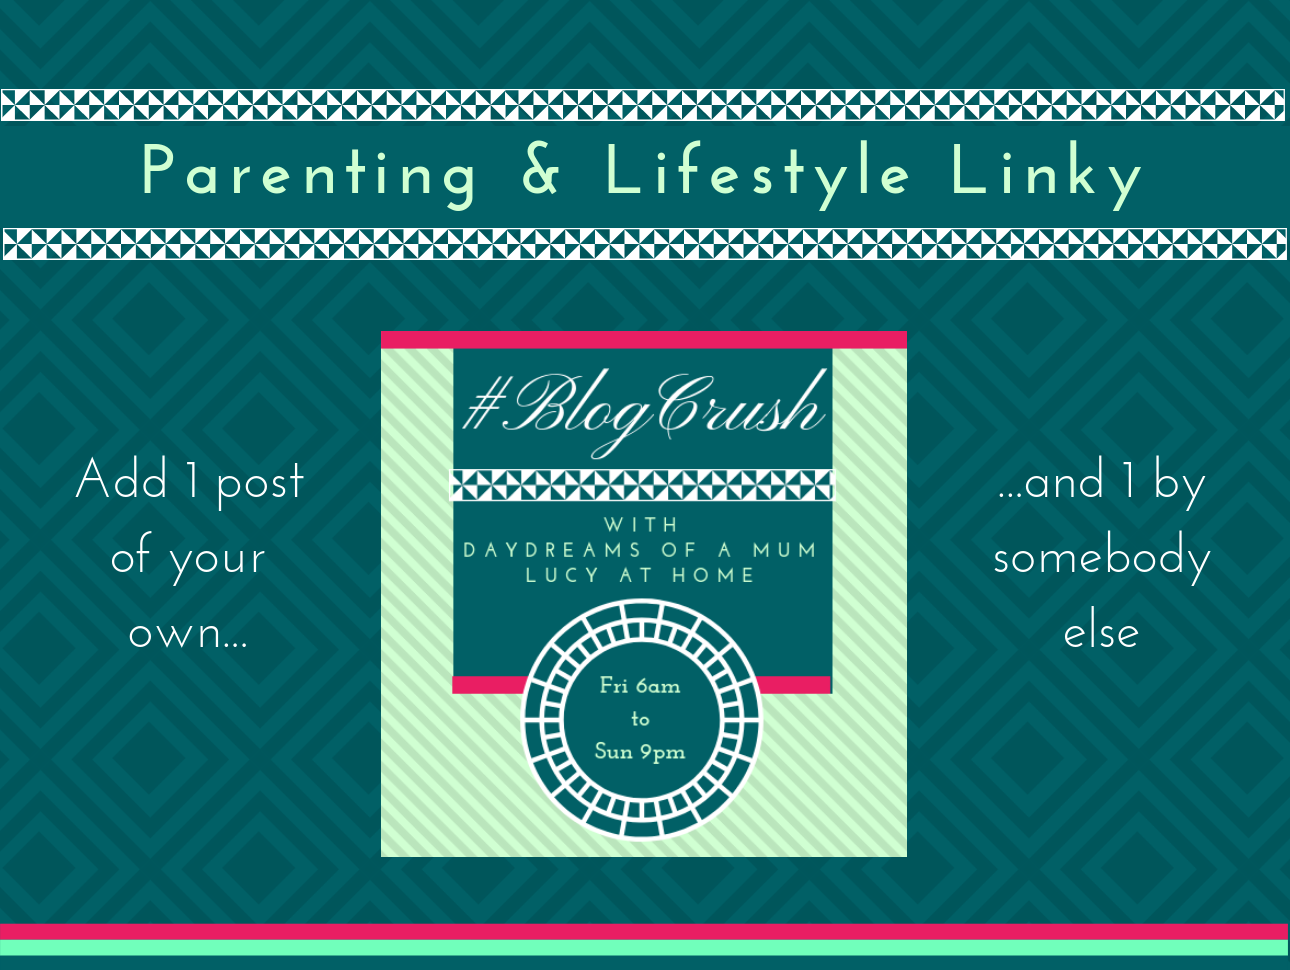 BlogCrush Linky Concept - BlogCrush Week 102